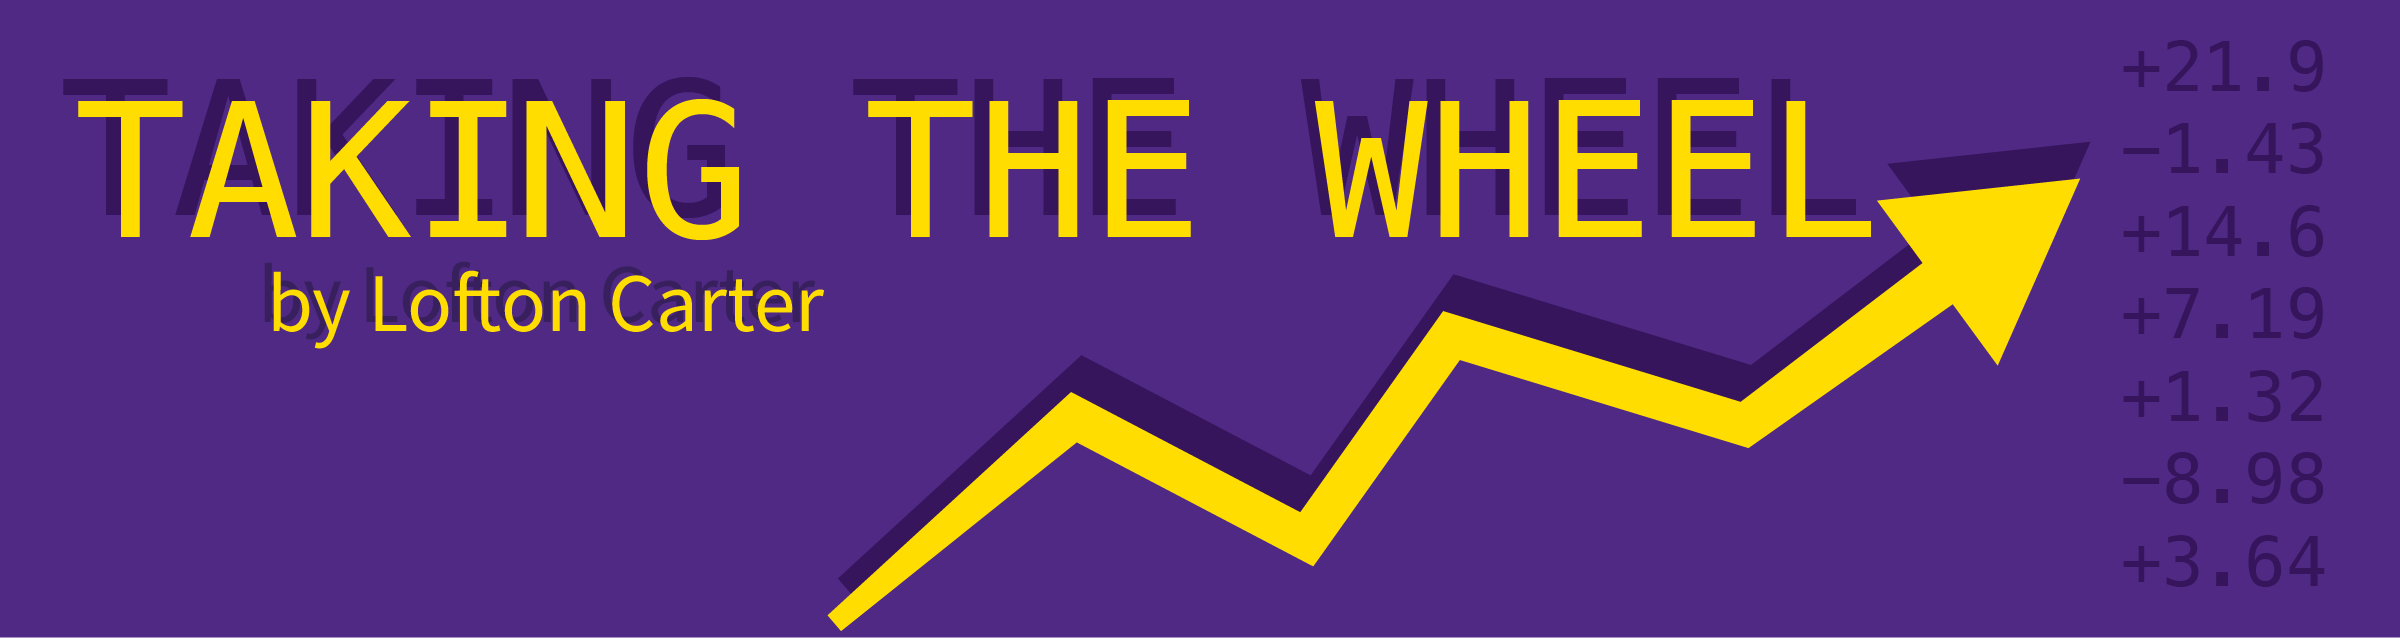 "A purple graphic with a stock indicator that reads ""Taking the Wheel by Lofton Carter"""